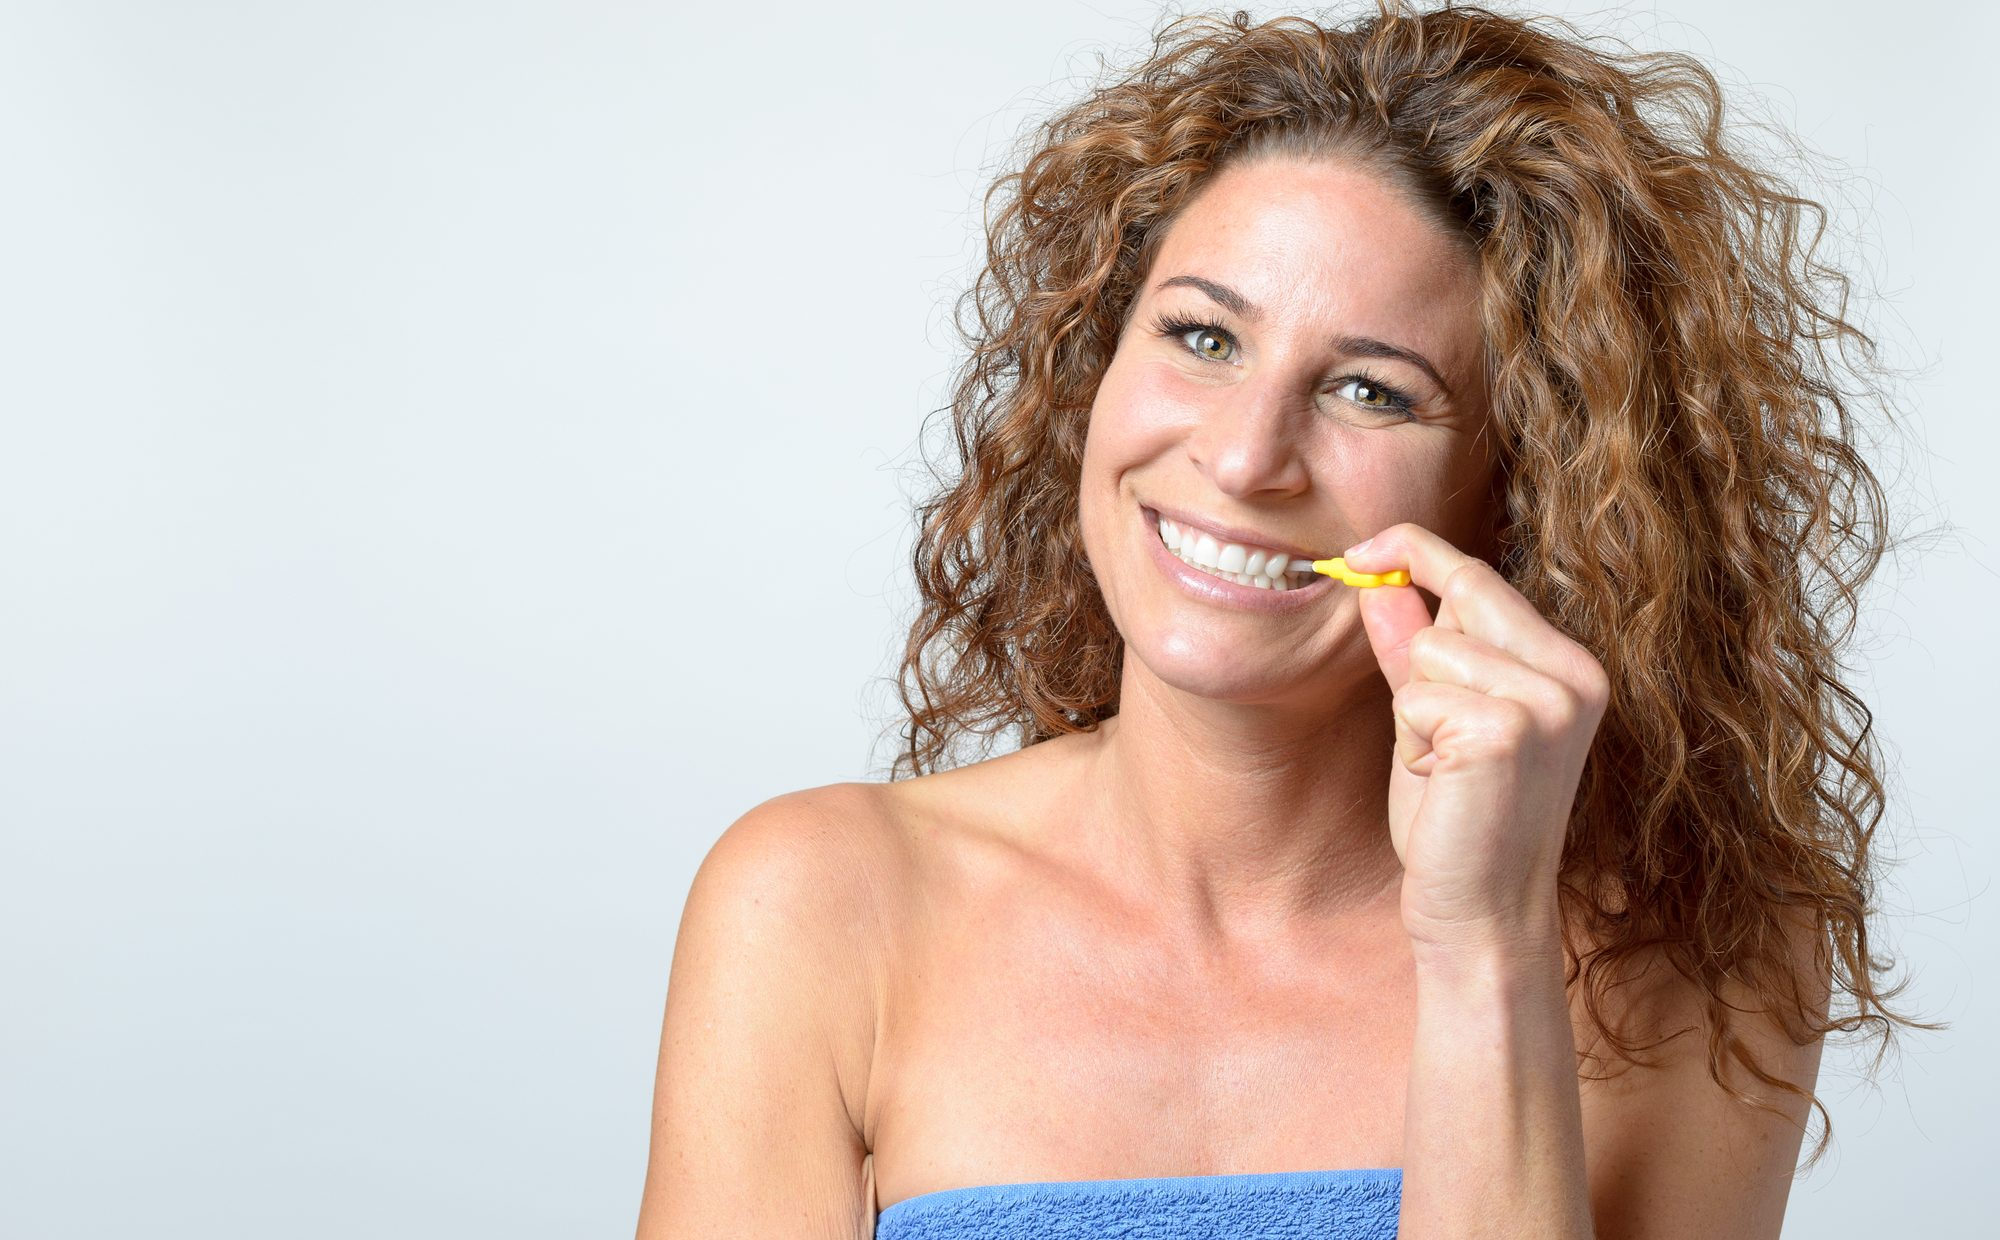 advantages of cleaning teeth with interdental brushes